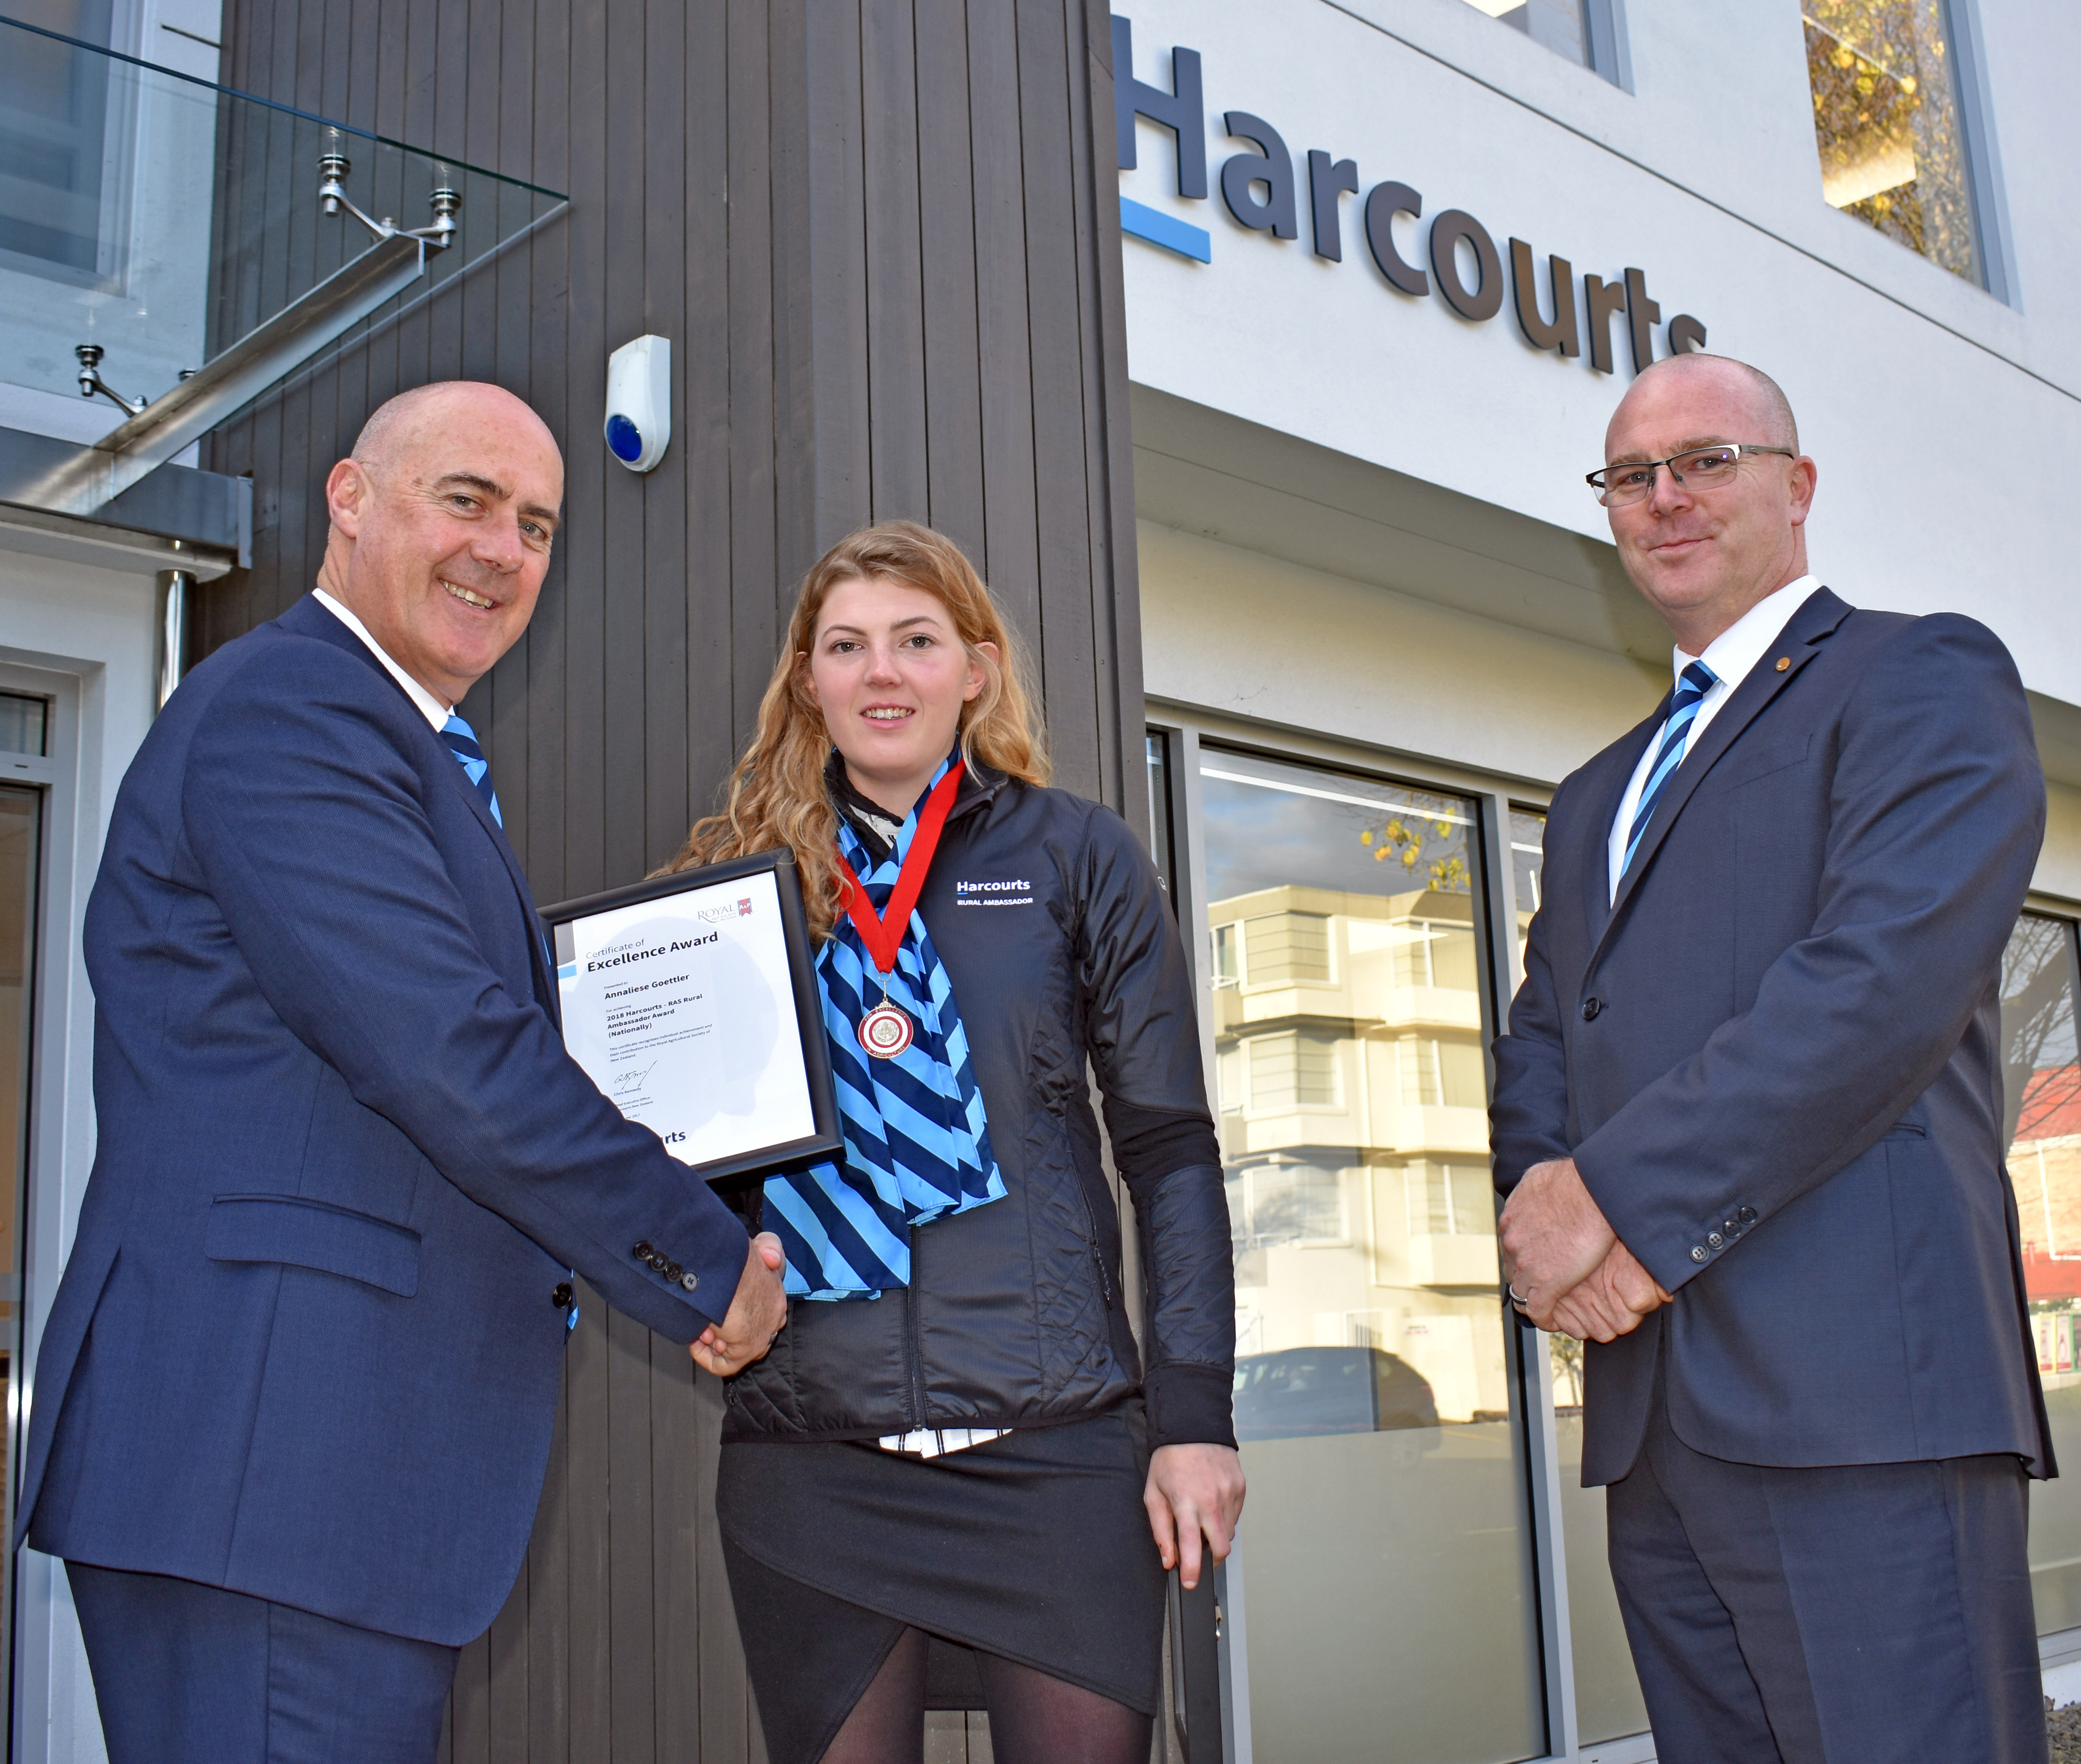 The Harcourts RAS Rural Ambassador of the Year